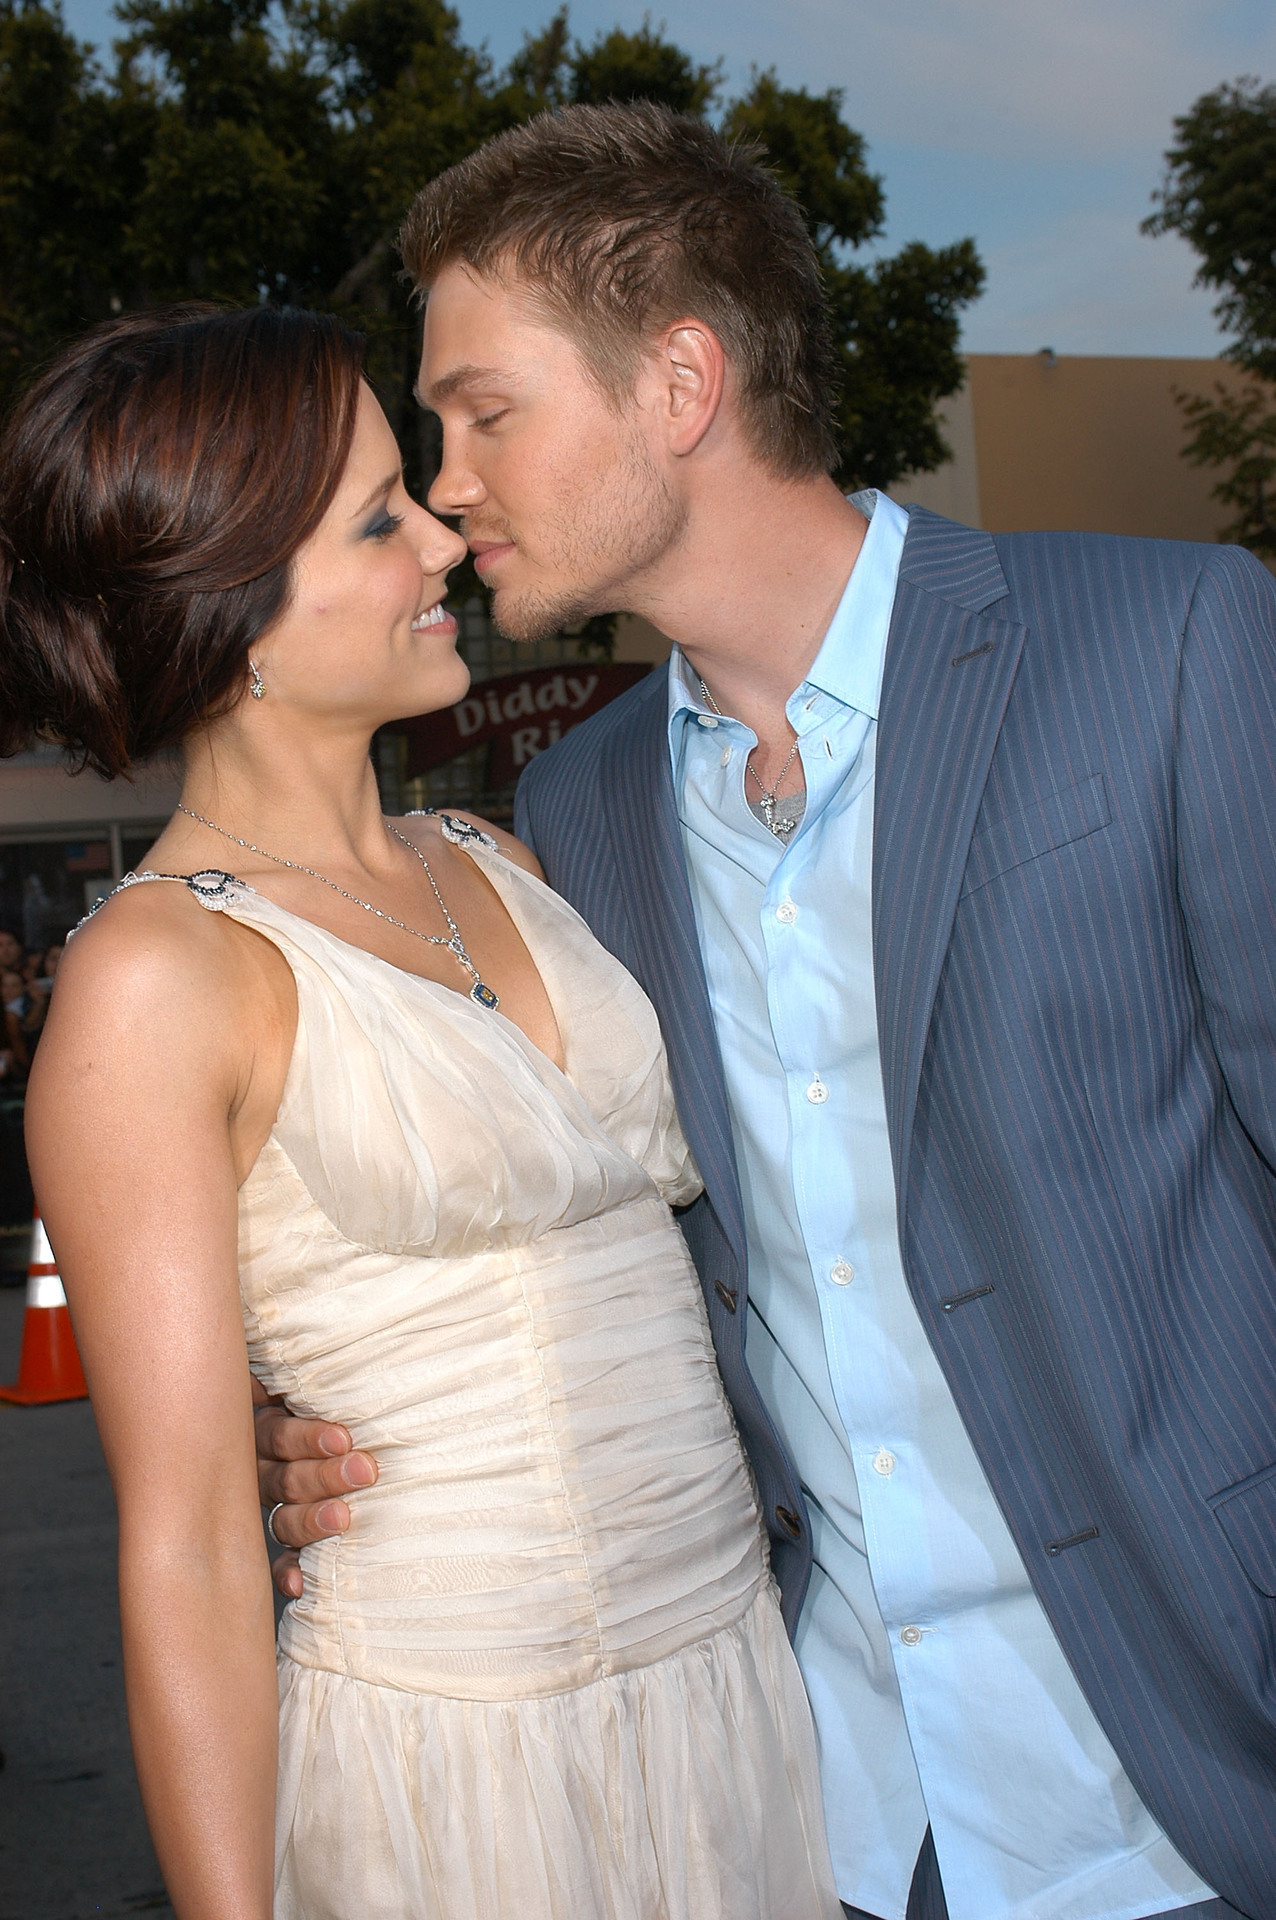 jaw-droppingly-short-celebrity-marriages-06